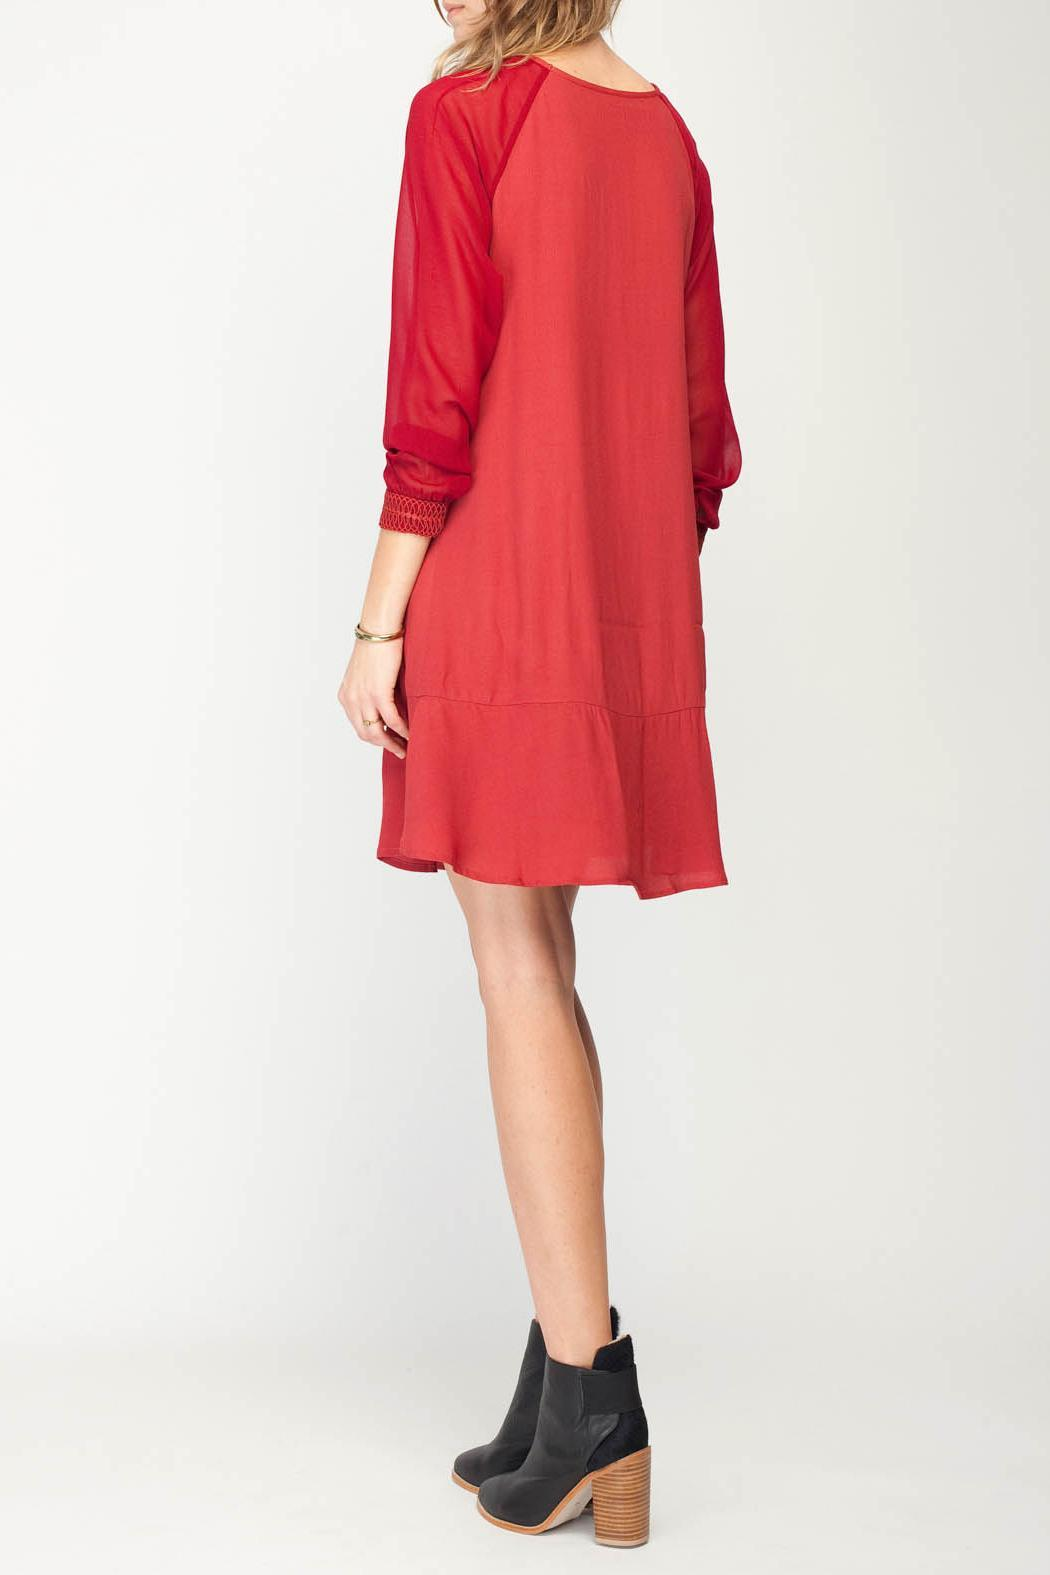 Gentle Fawn Senses Dress - Back Cropped Image